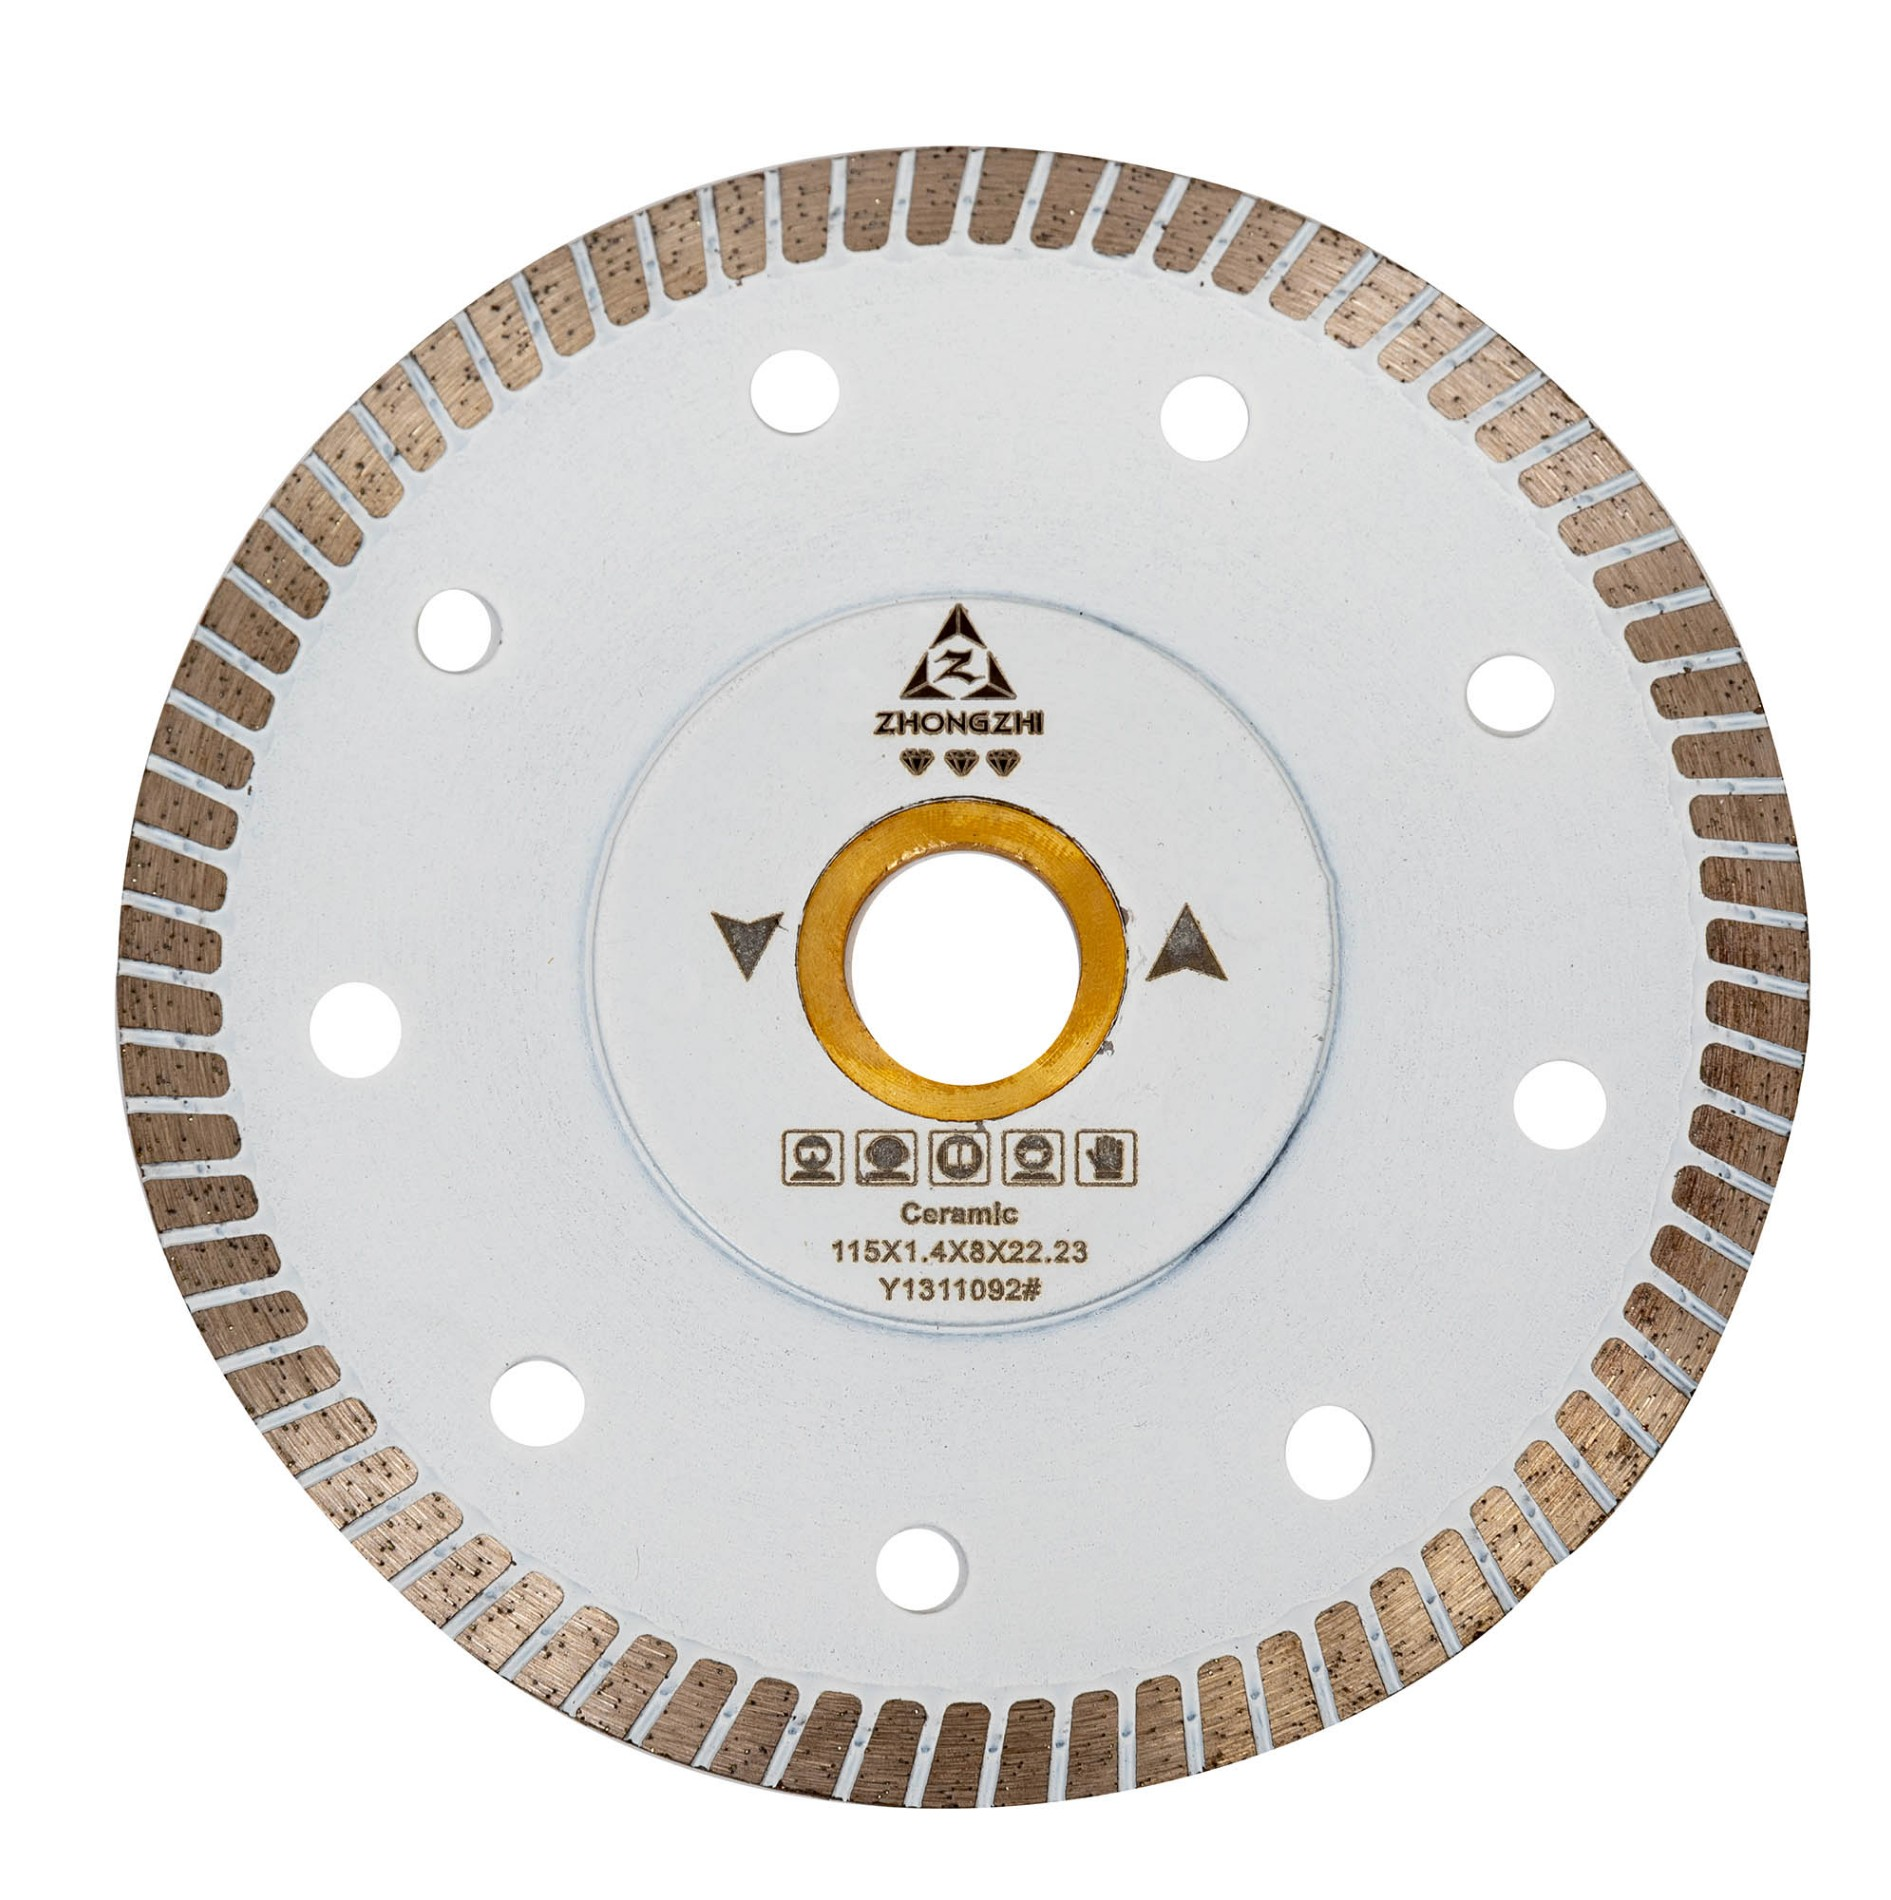 Sintered Super-thin Narrow Continuous Turbo Blades with Special Reinforced Steel Bodies for Cutting Porcelains and stones